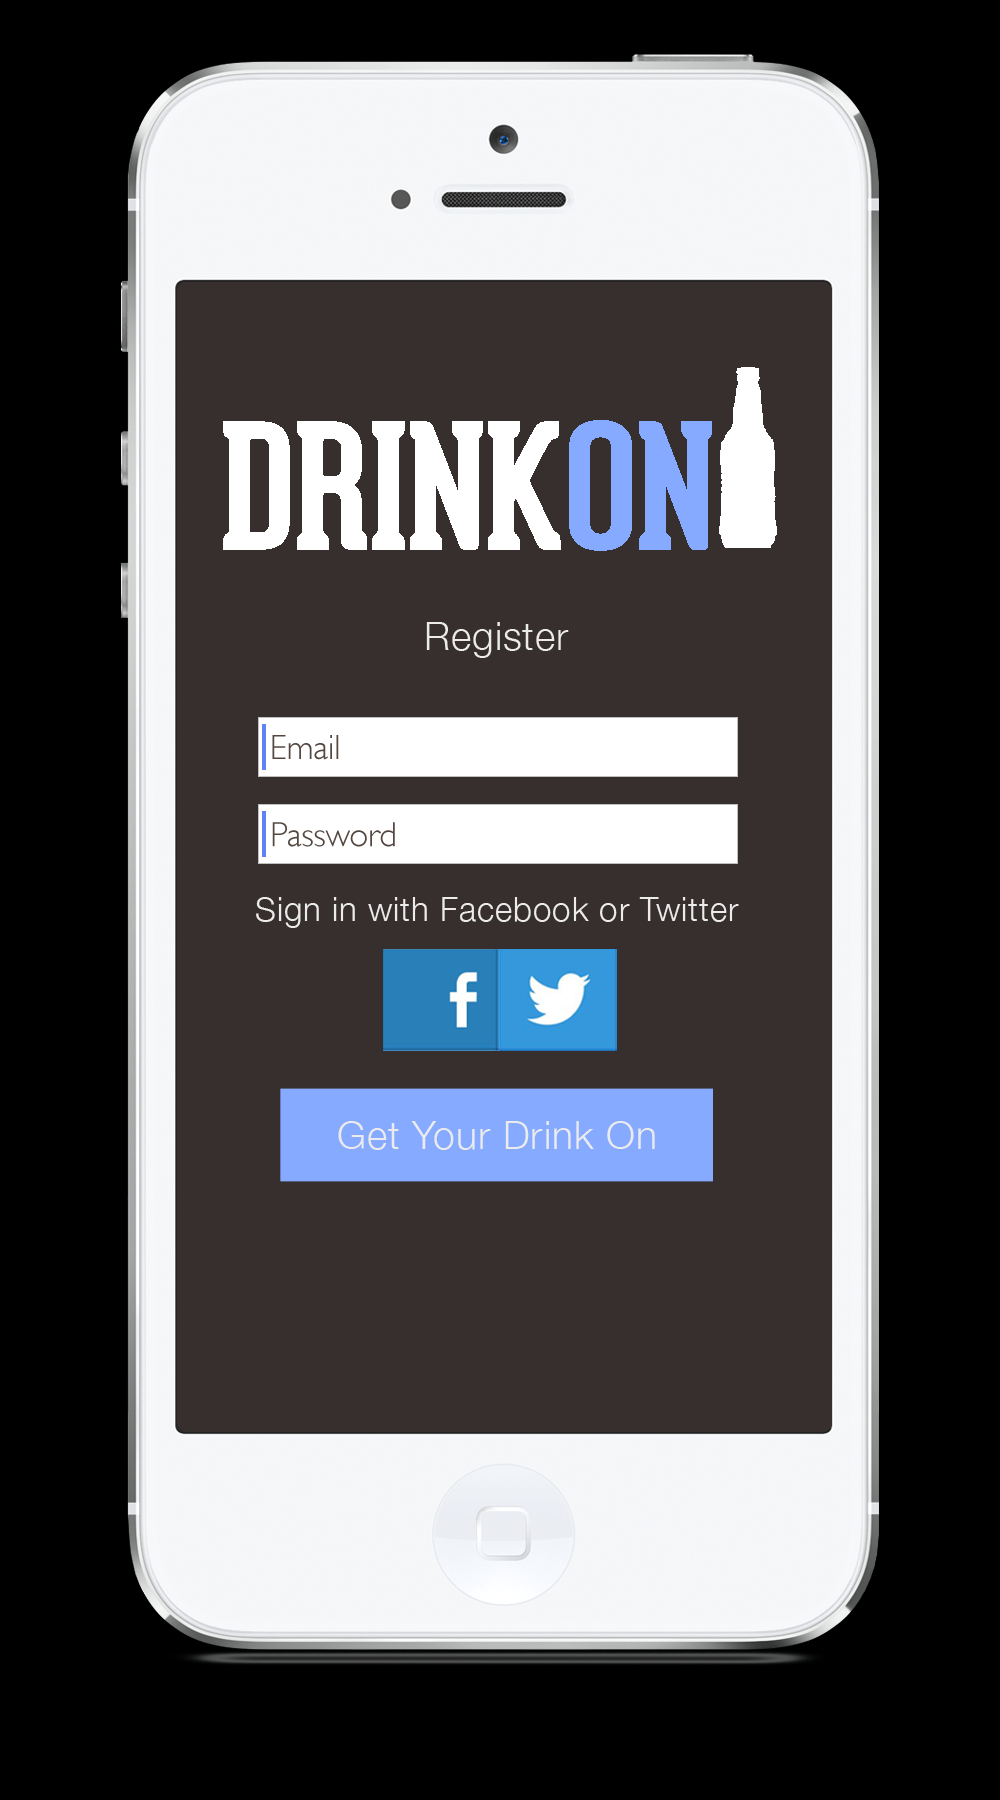 facebook mobile login iphone drinkon iphone app kristen marzelli design 14064